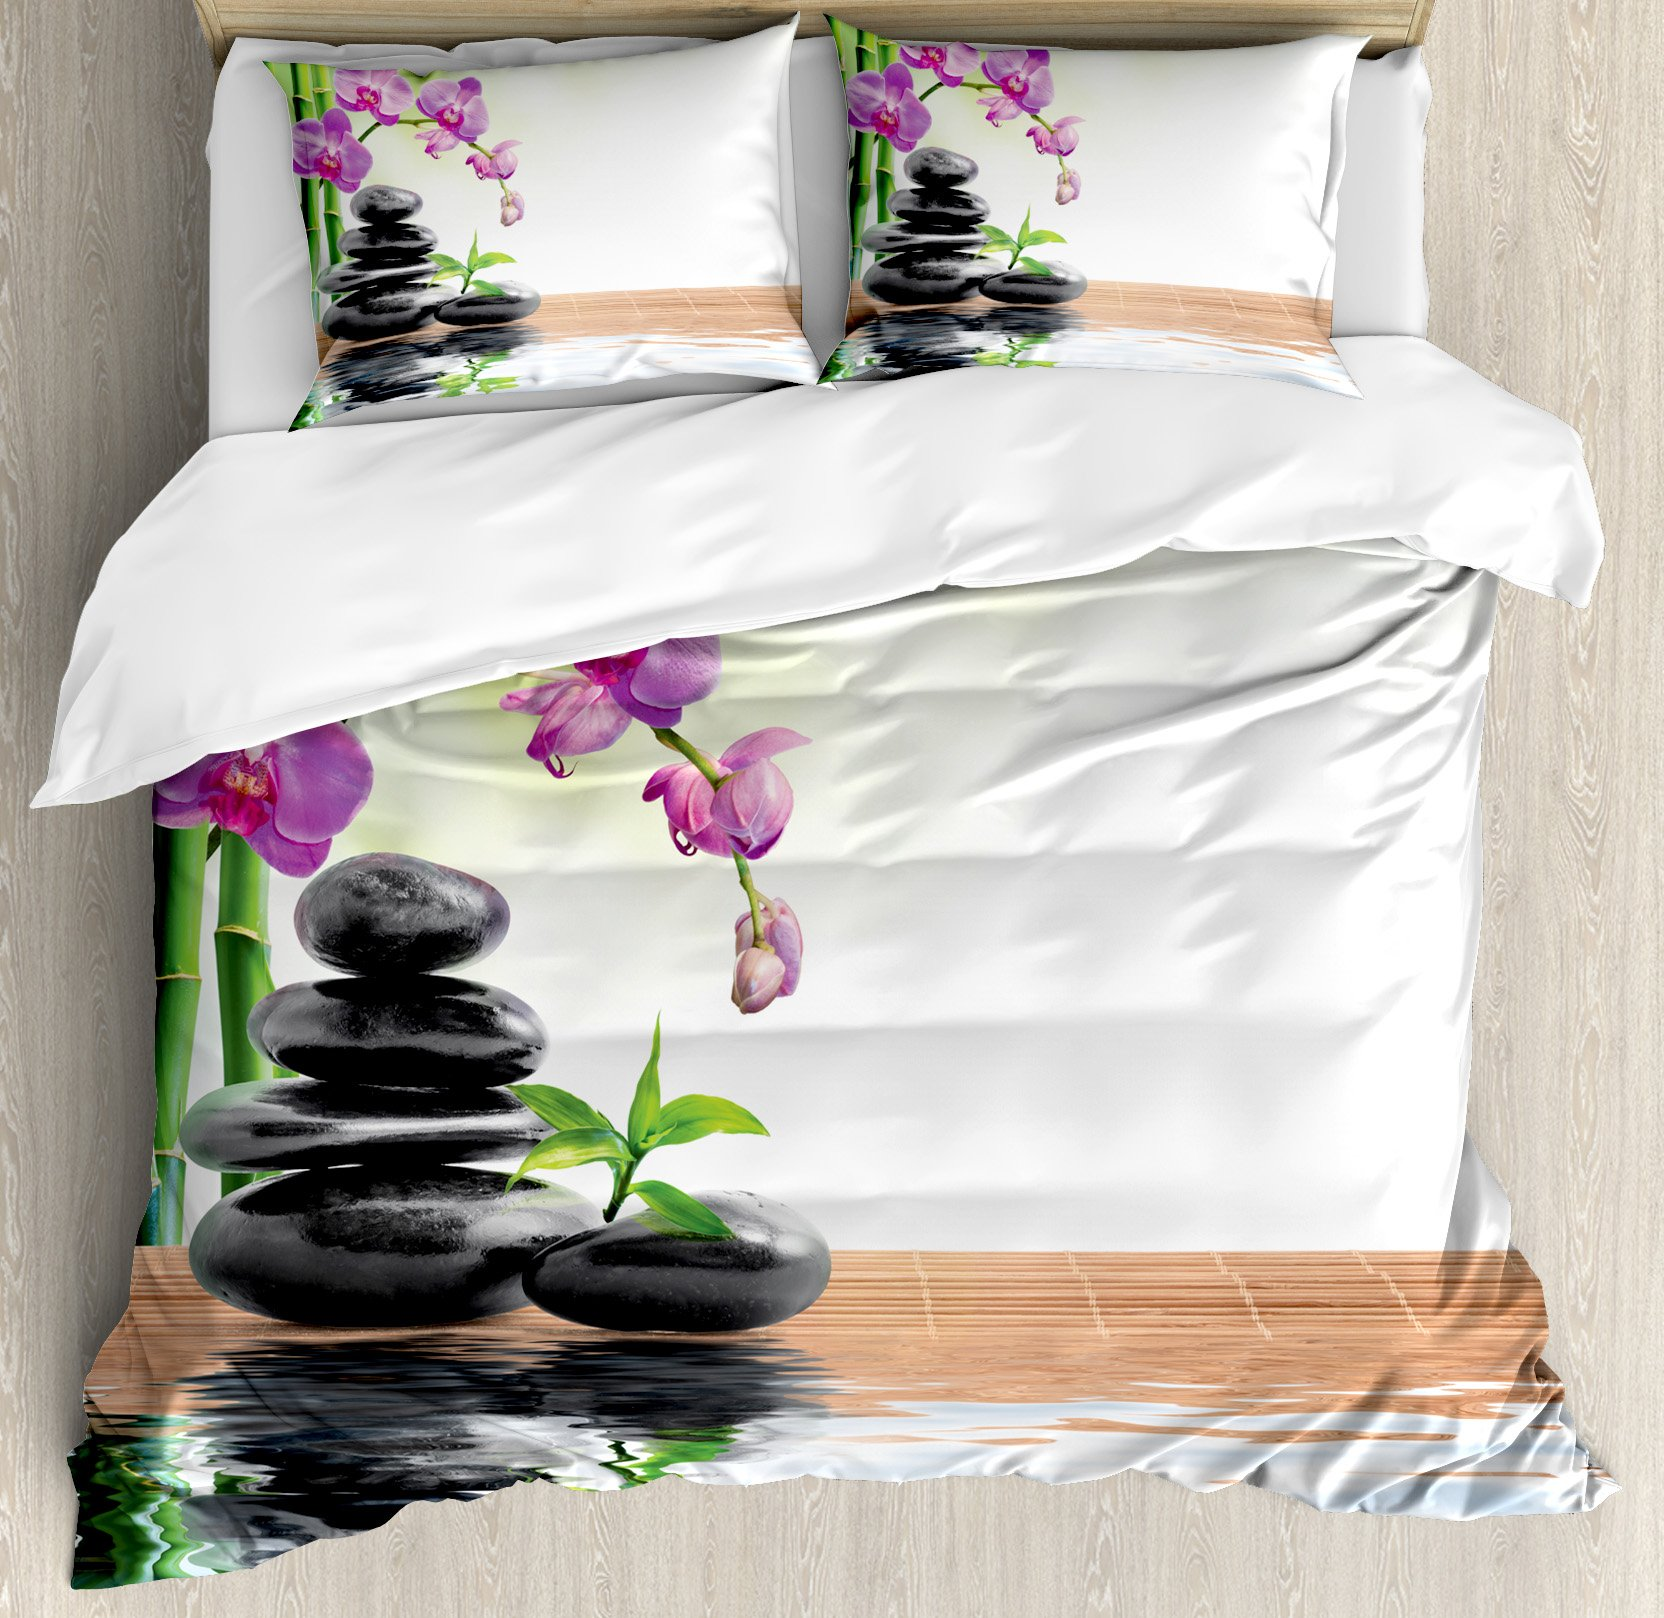 Spa Decor Duvet Cover Set by Ambesonne, Spa with Spring Water and Health Giving Properties Asian Eastern Way of Getting Better Art Photo, 3 Piece Bedding Set with Pillow Shams, Queen / Full, Multi by Ambesonne (Image #1)